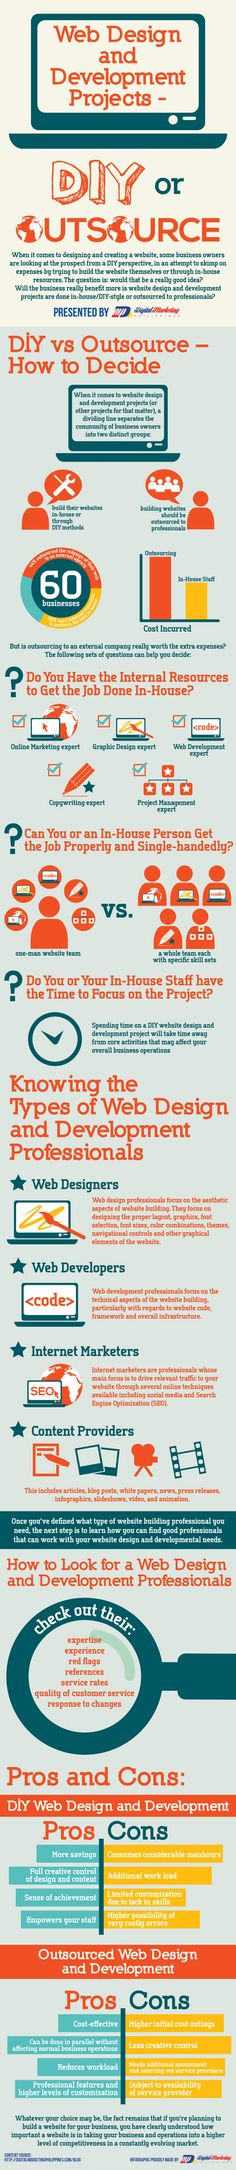 A great infographic on web design and development projects - DIY or Outsource? qSample offers a wide variety of great services, you can find out more at www.qsample.com/about-us